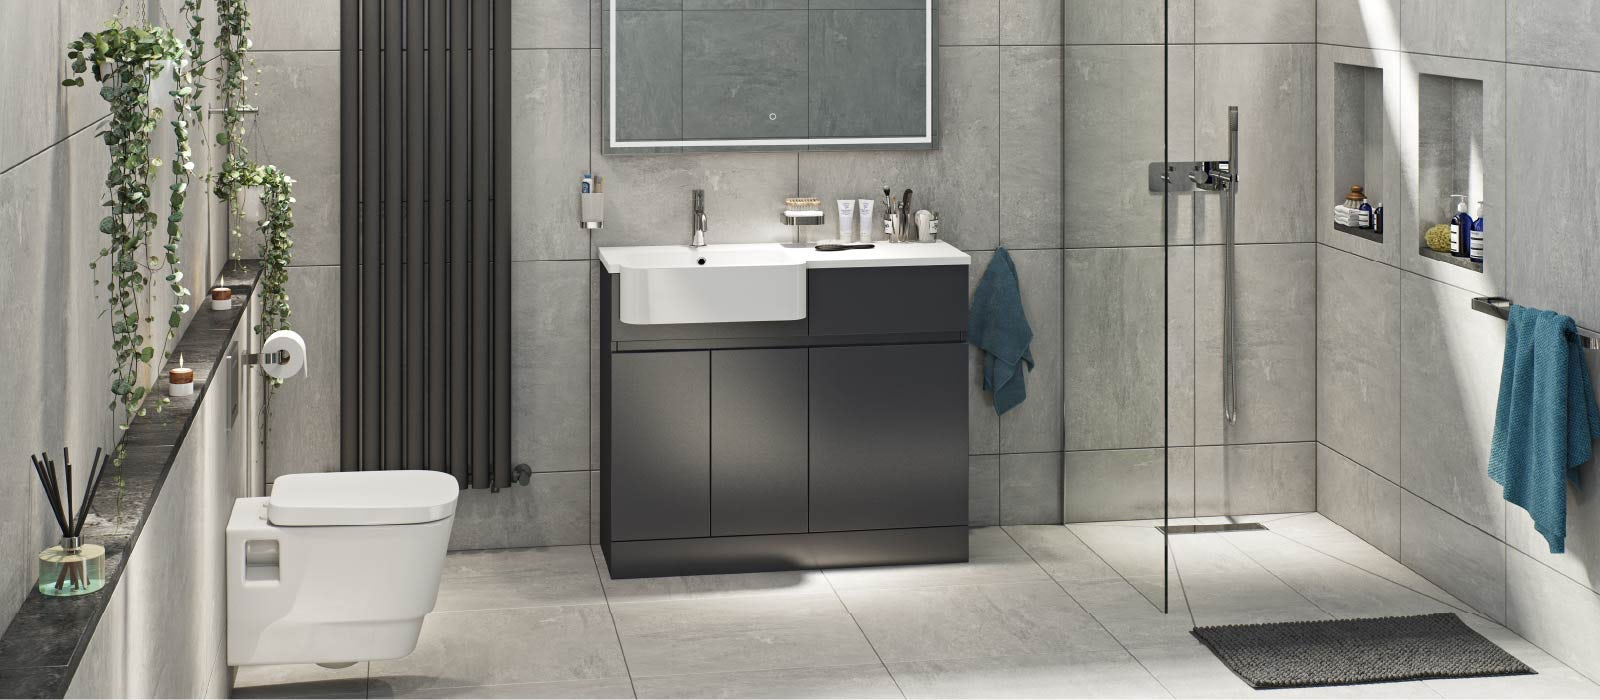 10 Modern Bathroom Ideas For 2021 Victoriaplum Com